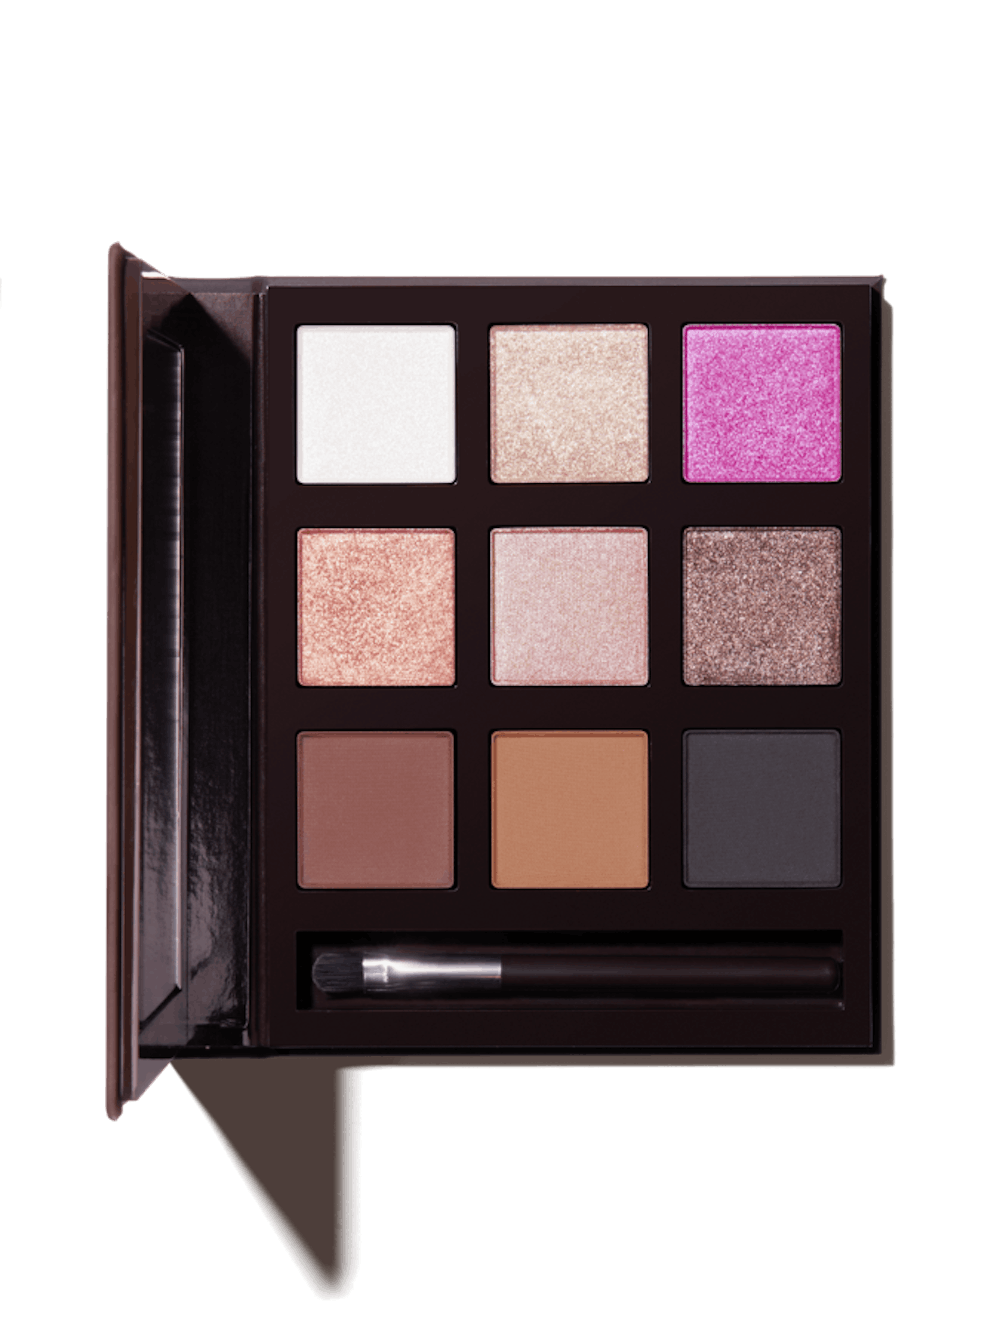 Flesh Fleshcolor Eyeshadow Palette